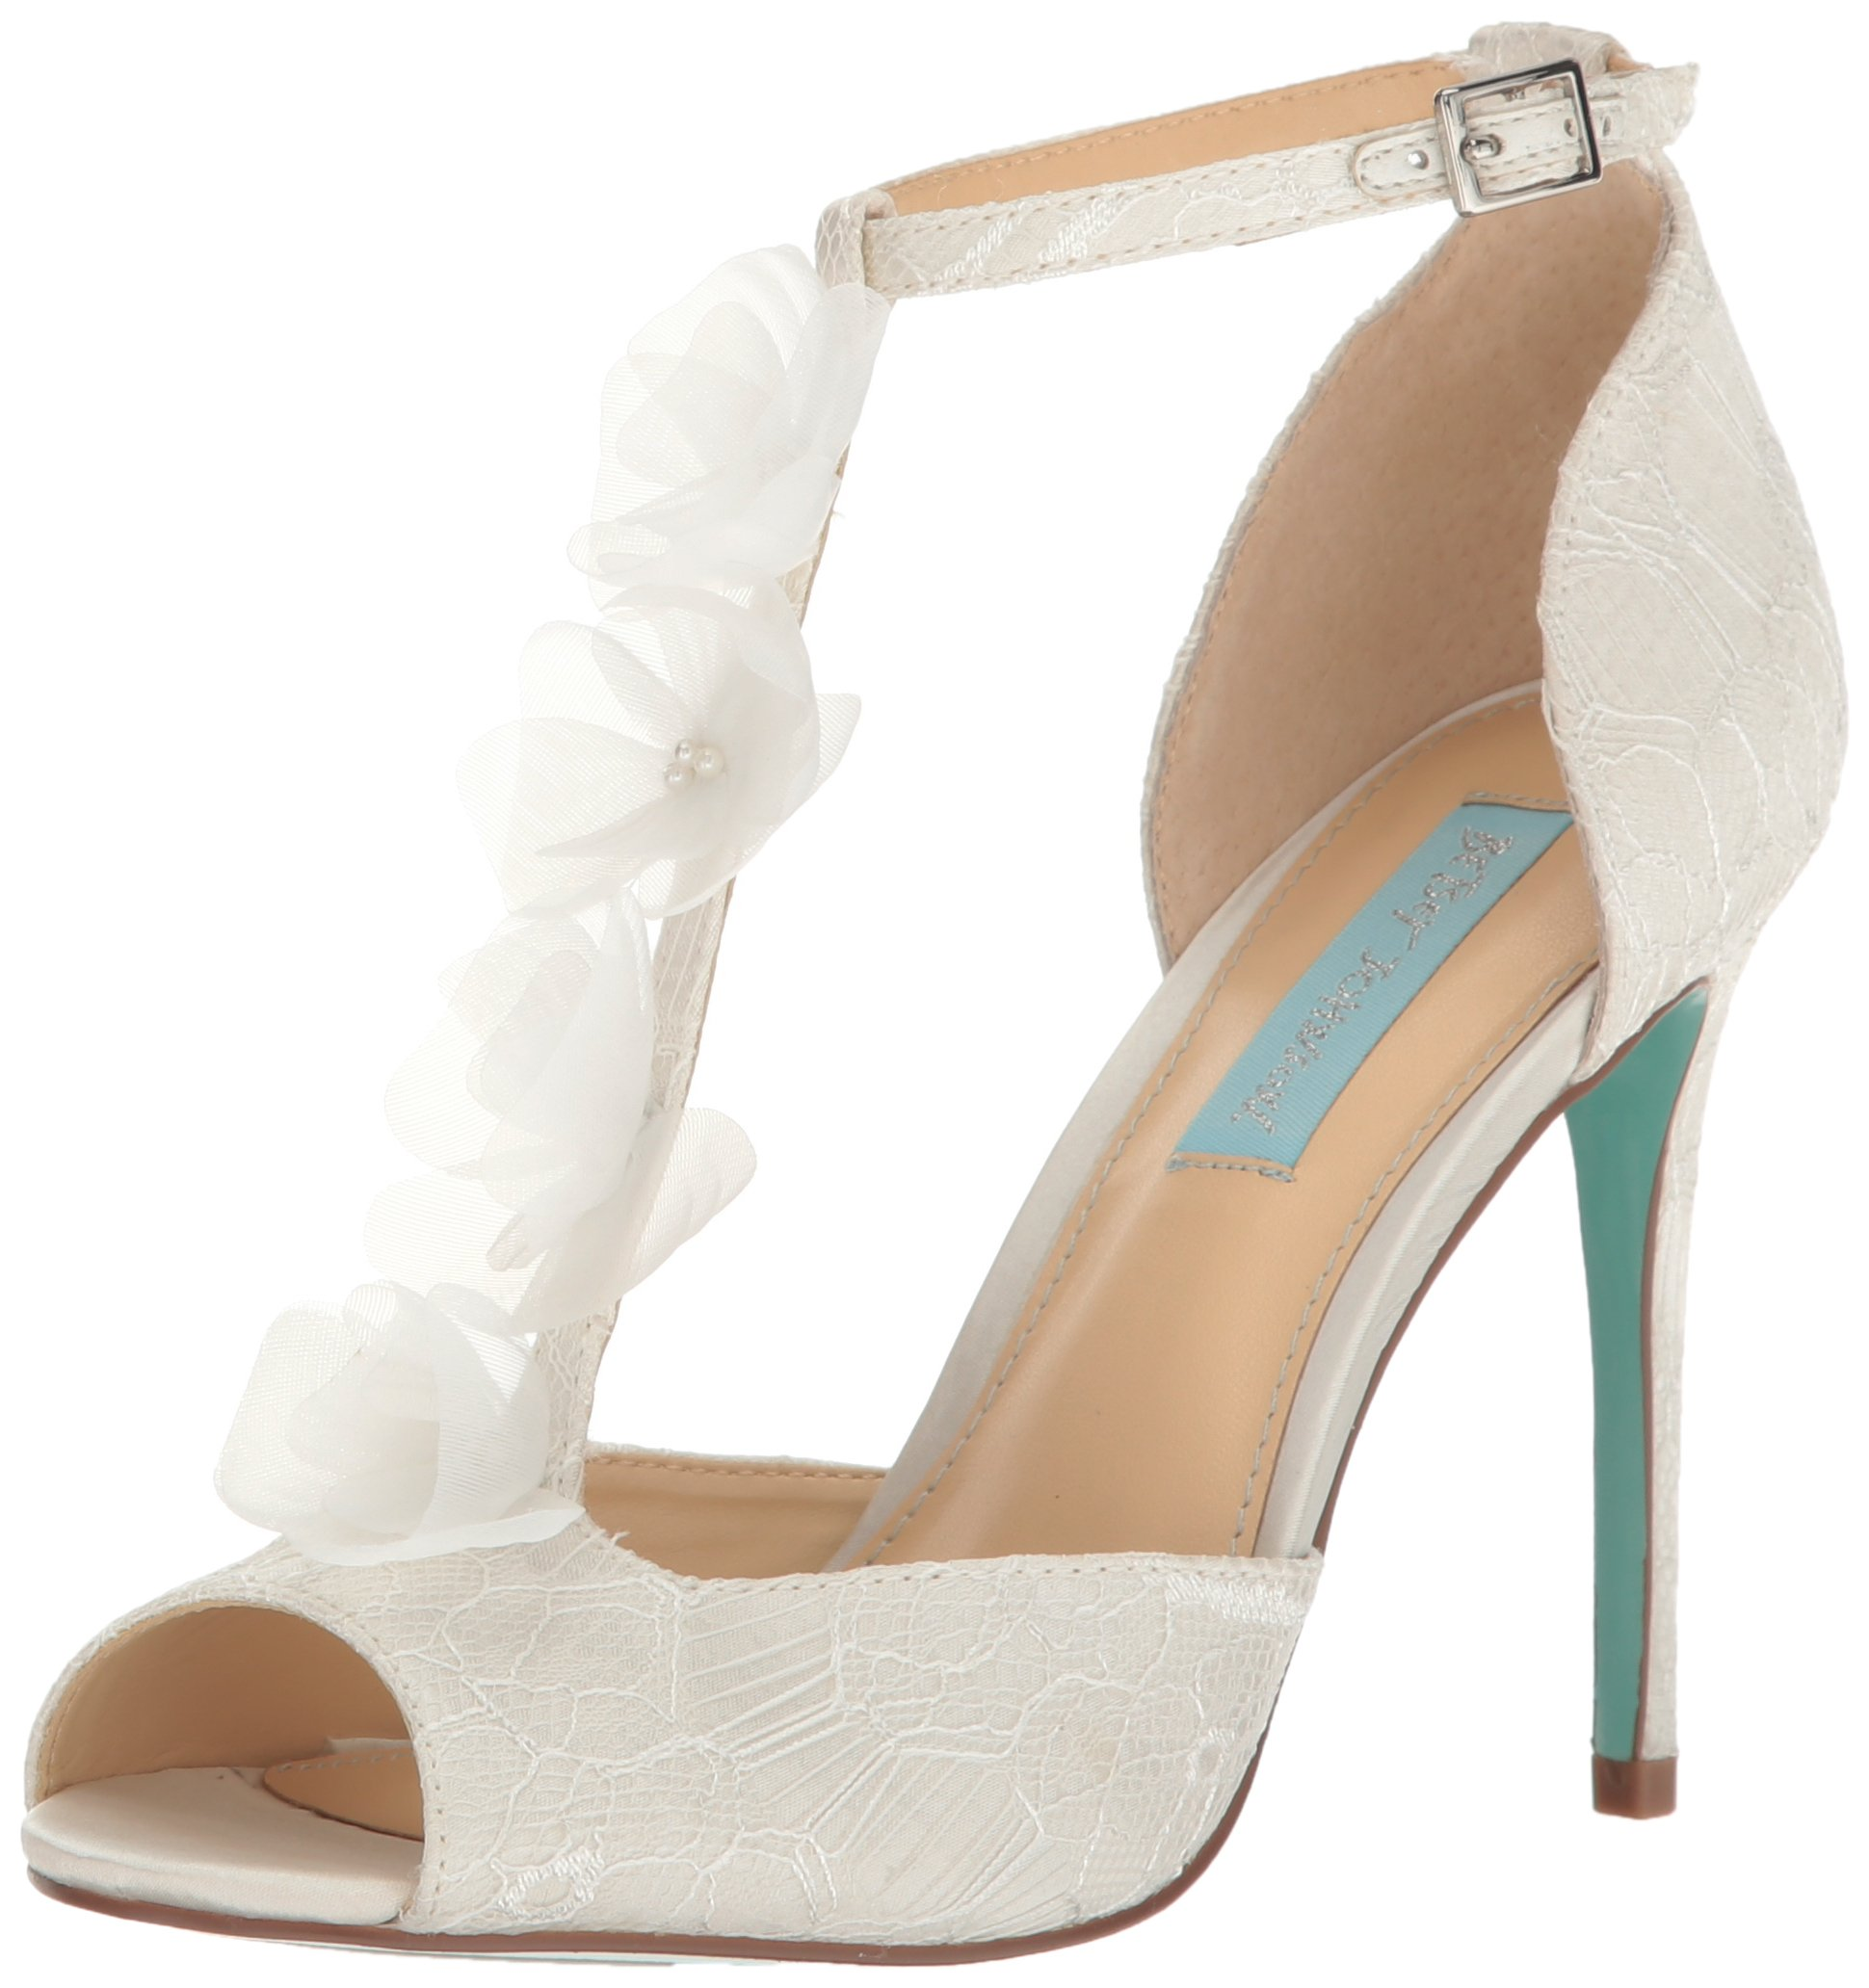 Blue by Betsey Johnson Women's SB-Sadie Dress Pump, Ivory Satin, 7.5 M US